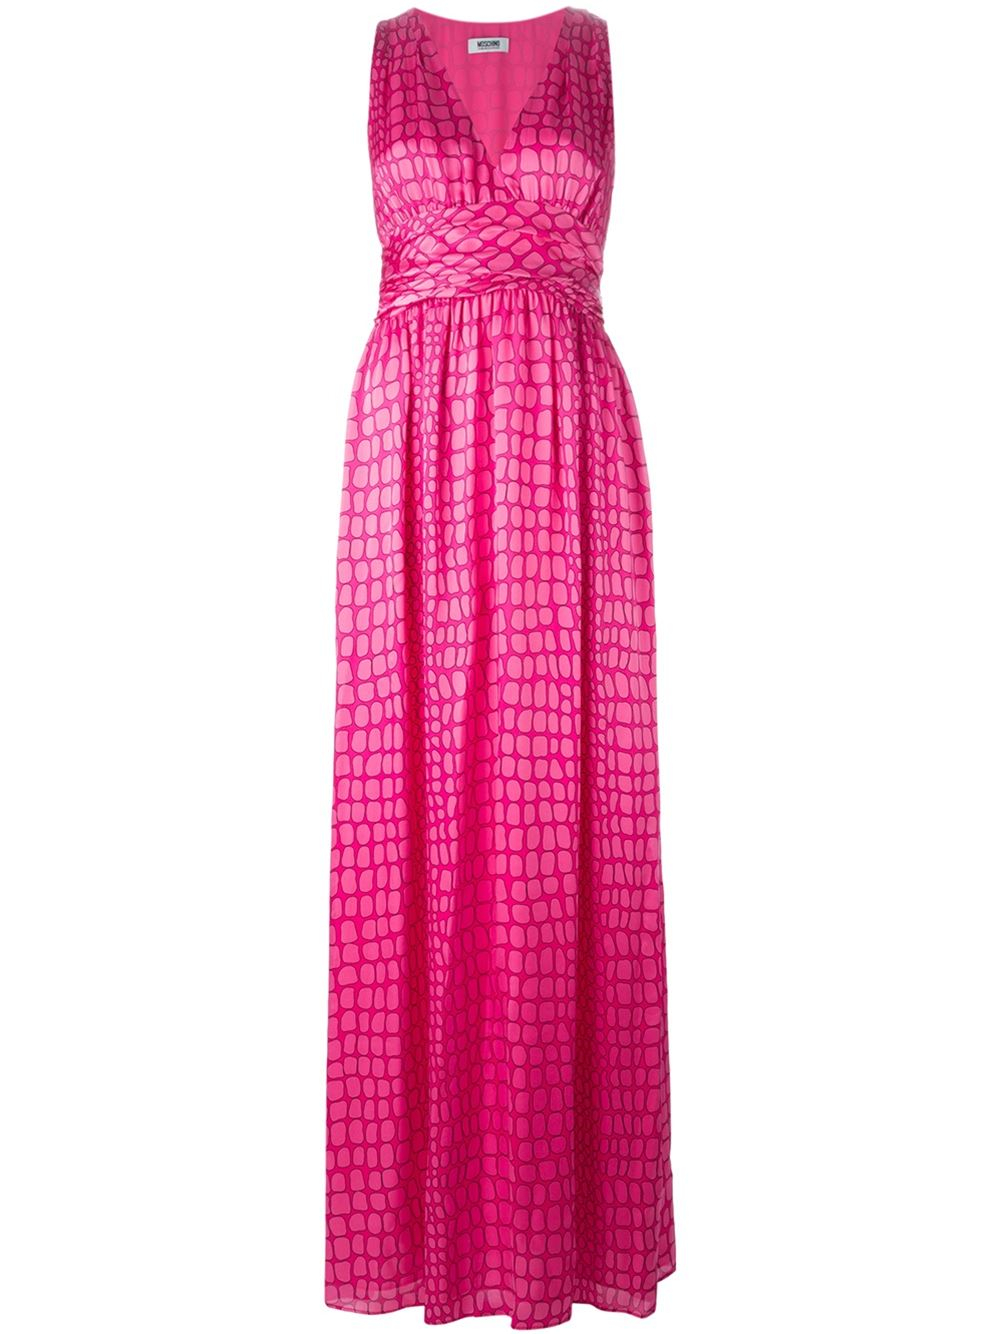 Boutique Moschino Pebble Print Long Dress In Pink Pink